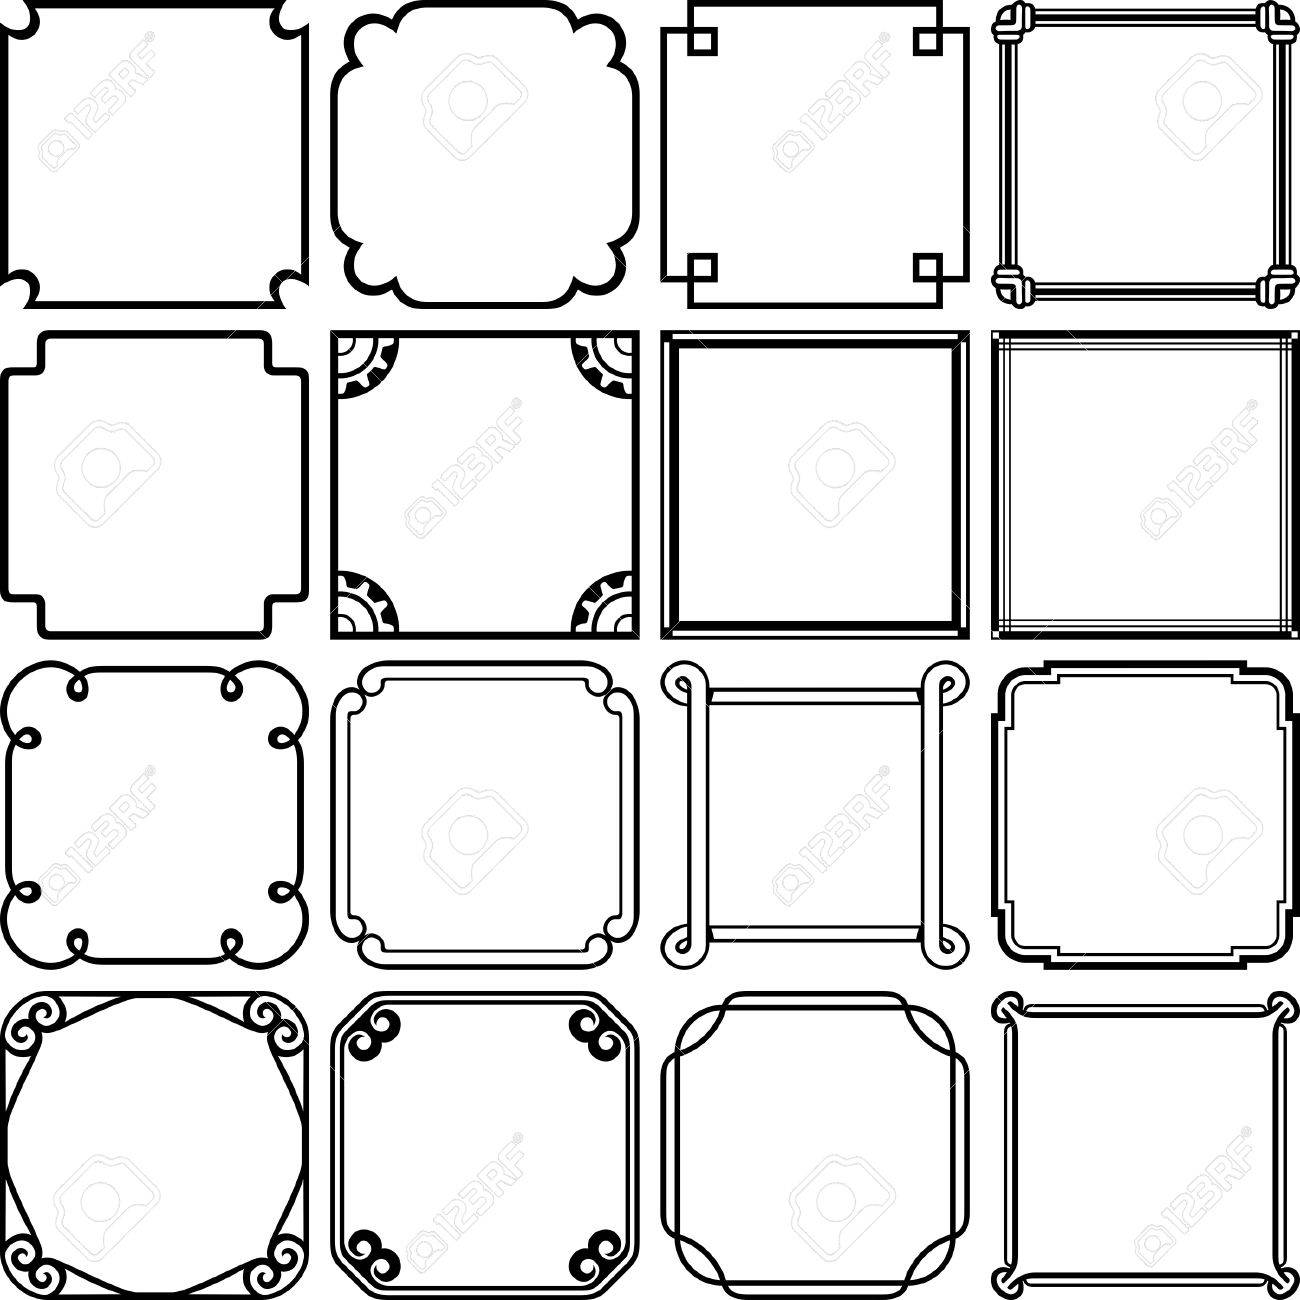 Decorative Simple Frames Royalty Free Cliparts, Vectors, And Stock ...